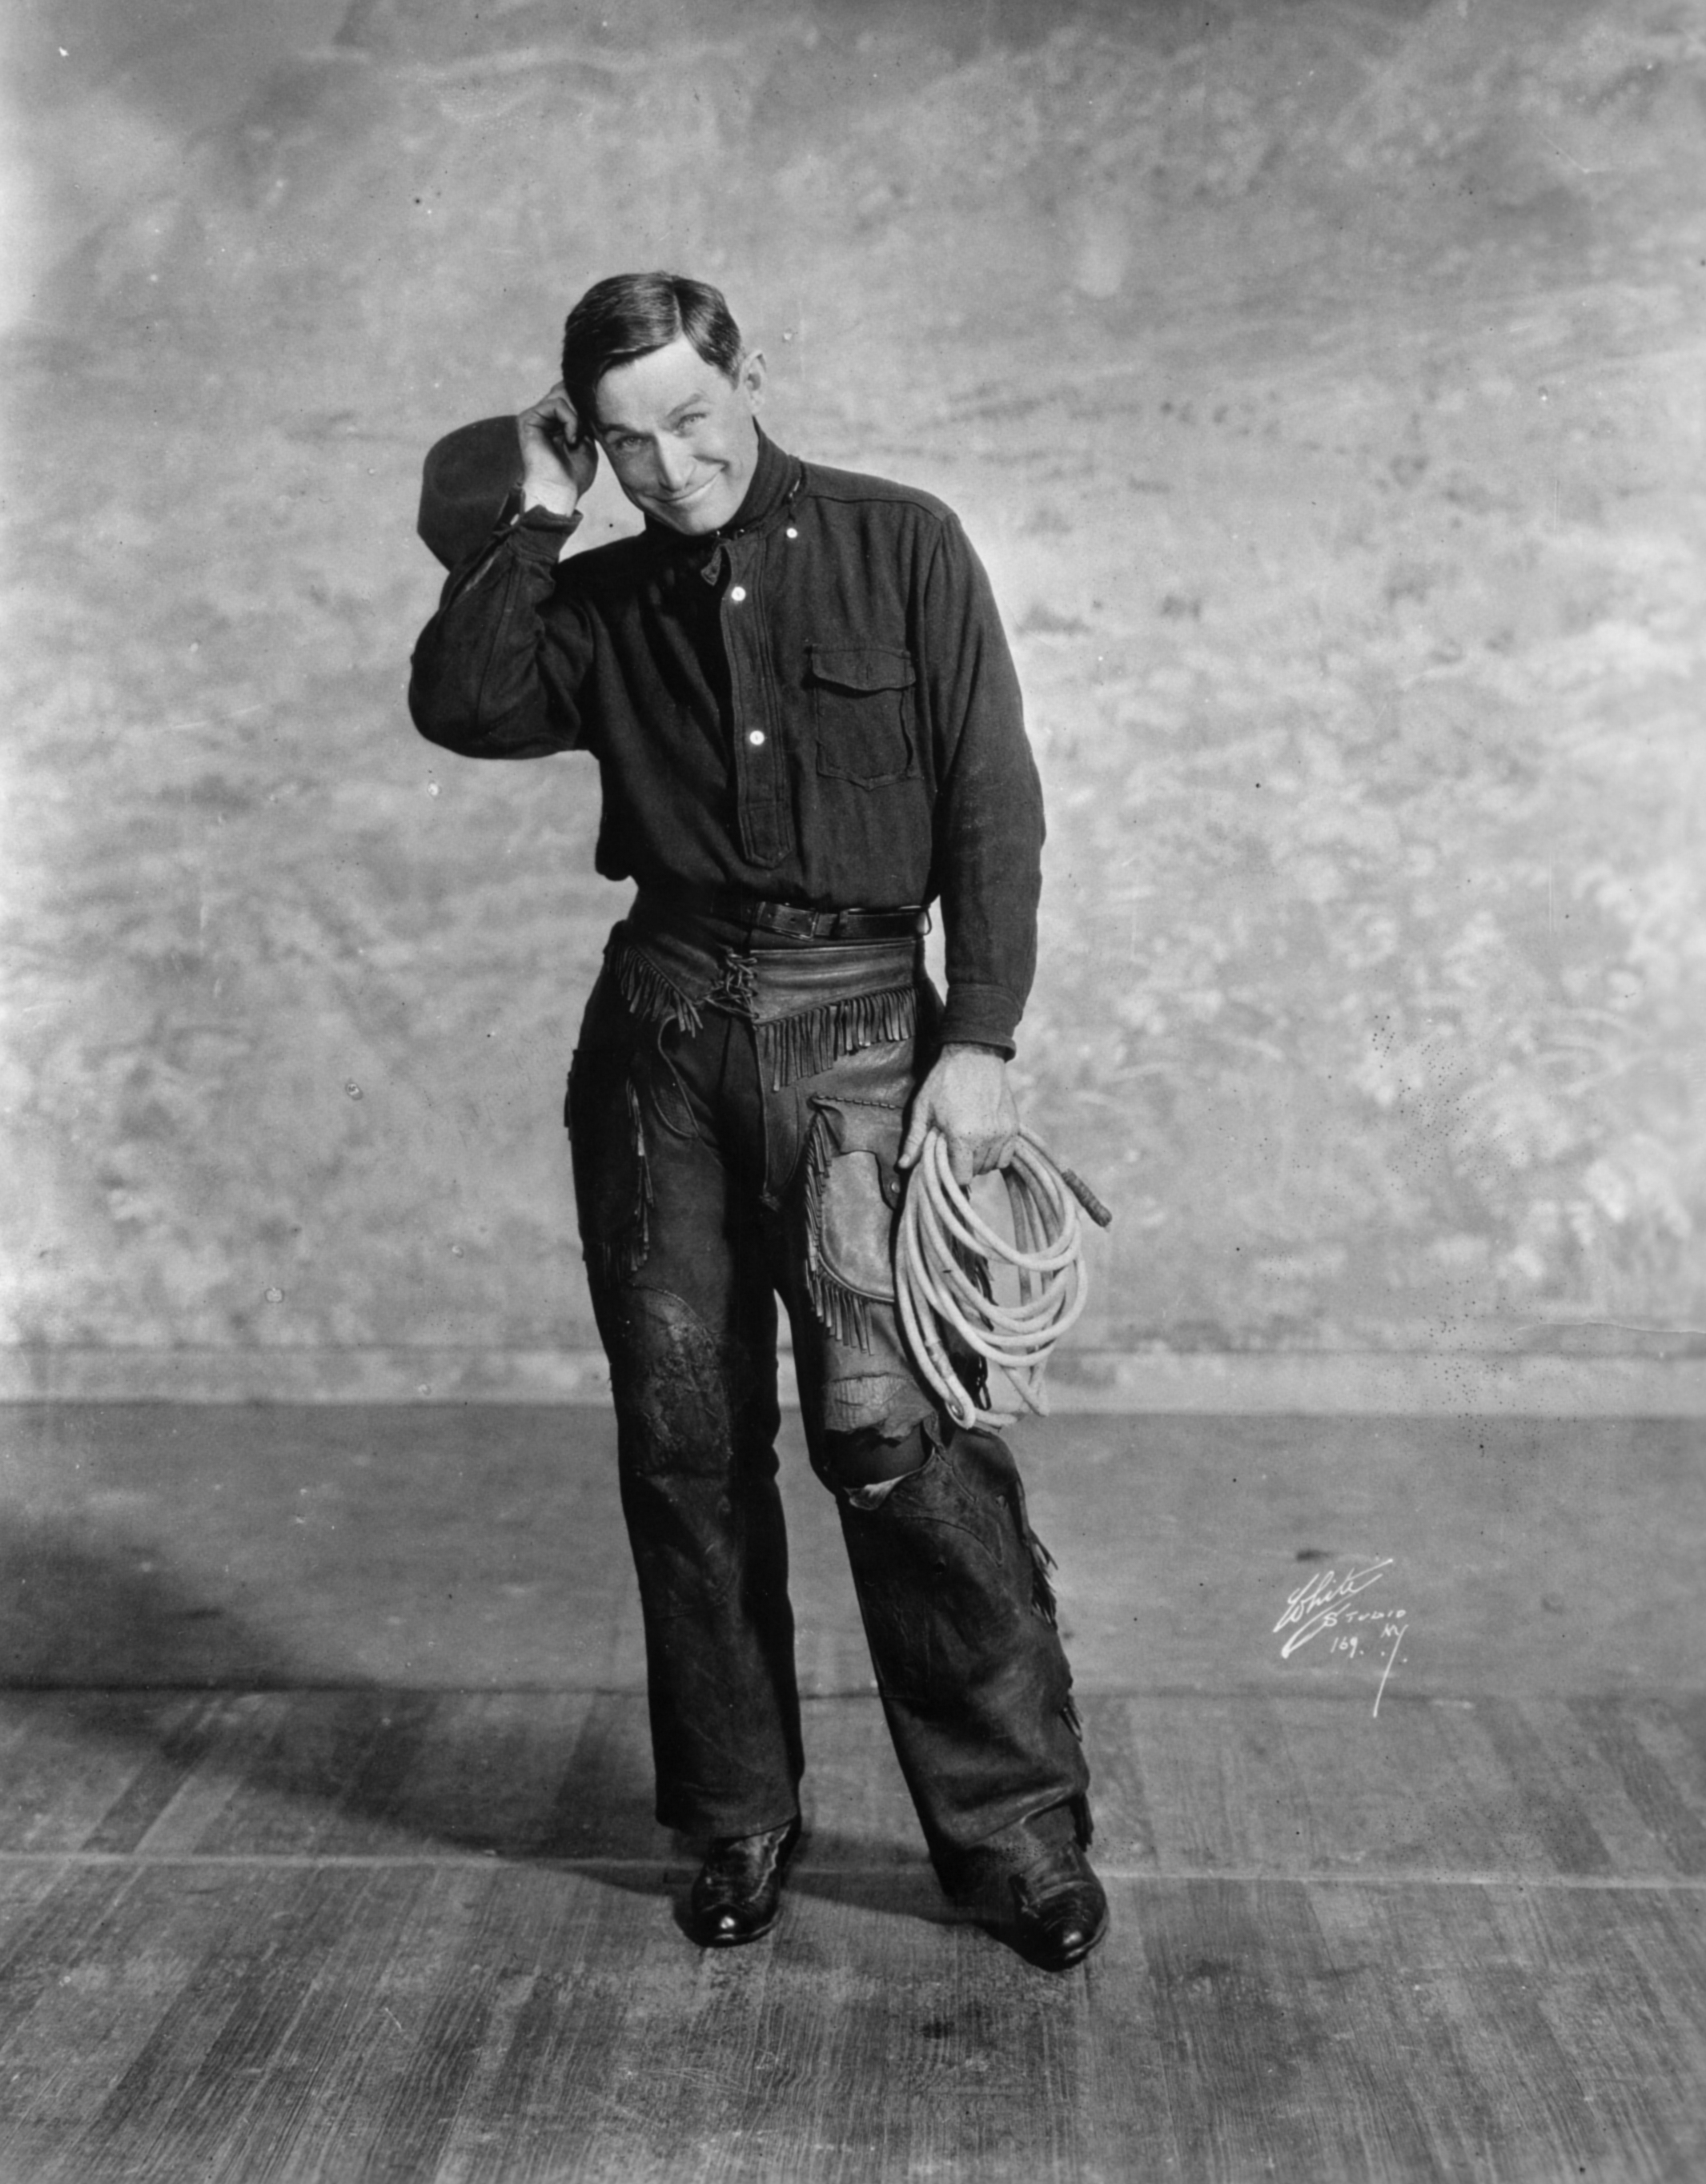 Will Rogers in famous vaudeville promotional photo.